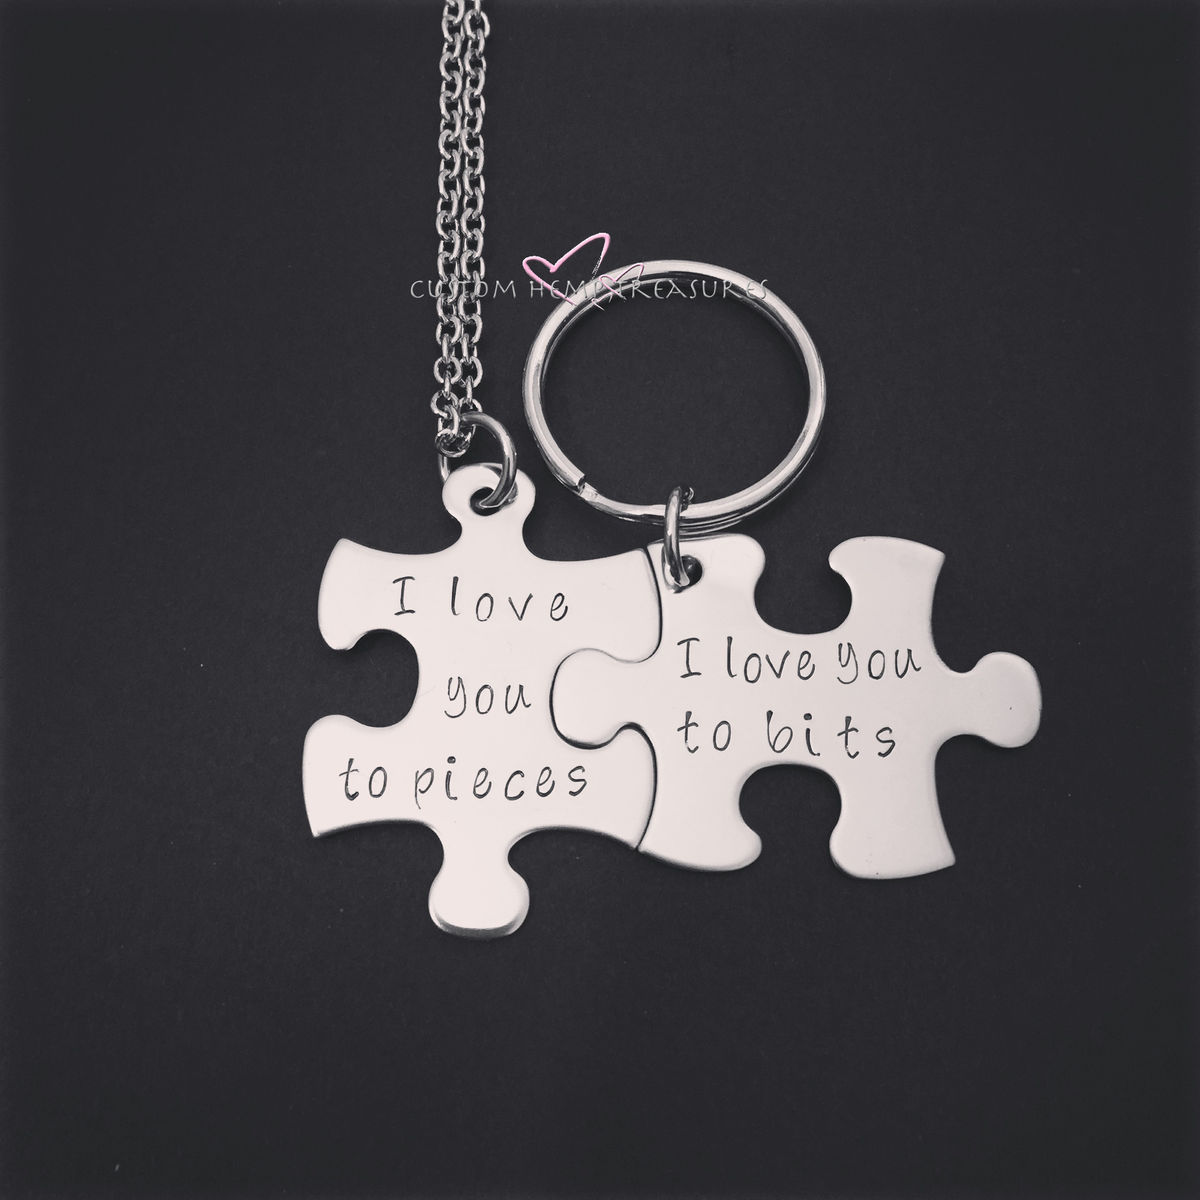 Necklace Keychain Set, I love you to pieces, i love you to bits - product images  of